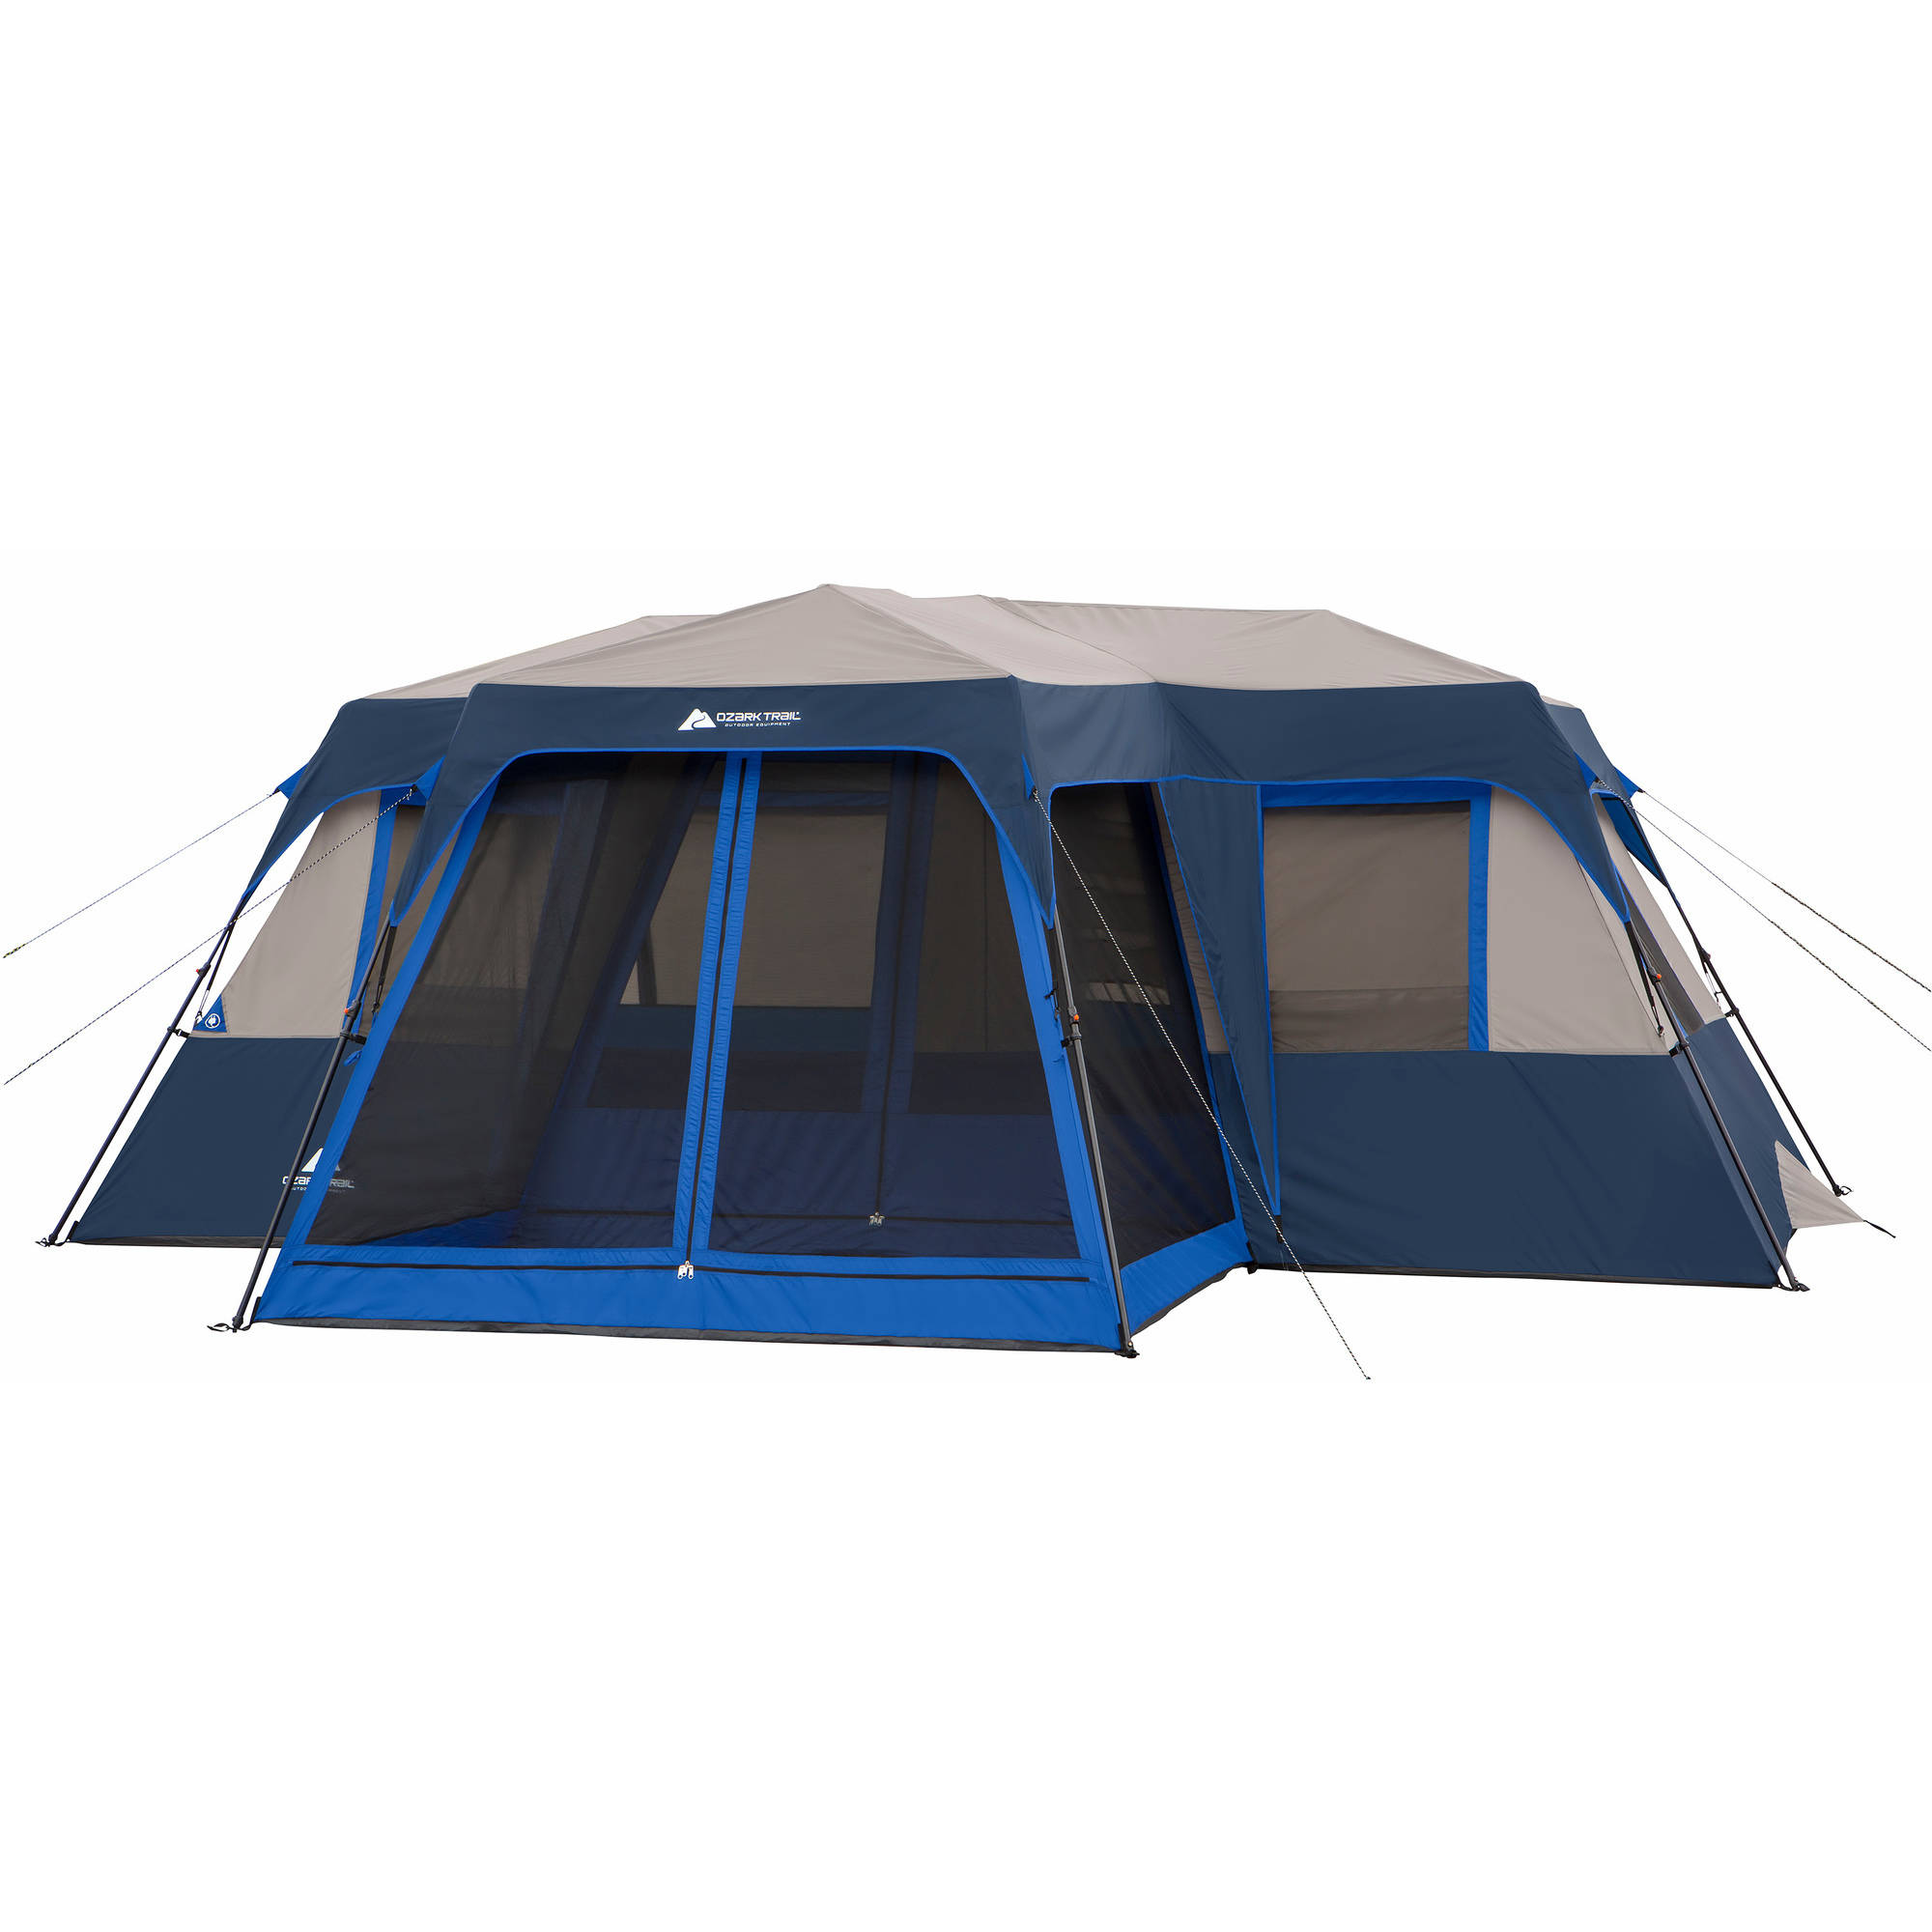 Ozark Trail 12 Person 3 Room Instant Cabin Tent With Screen Room